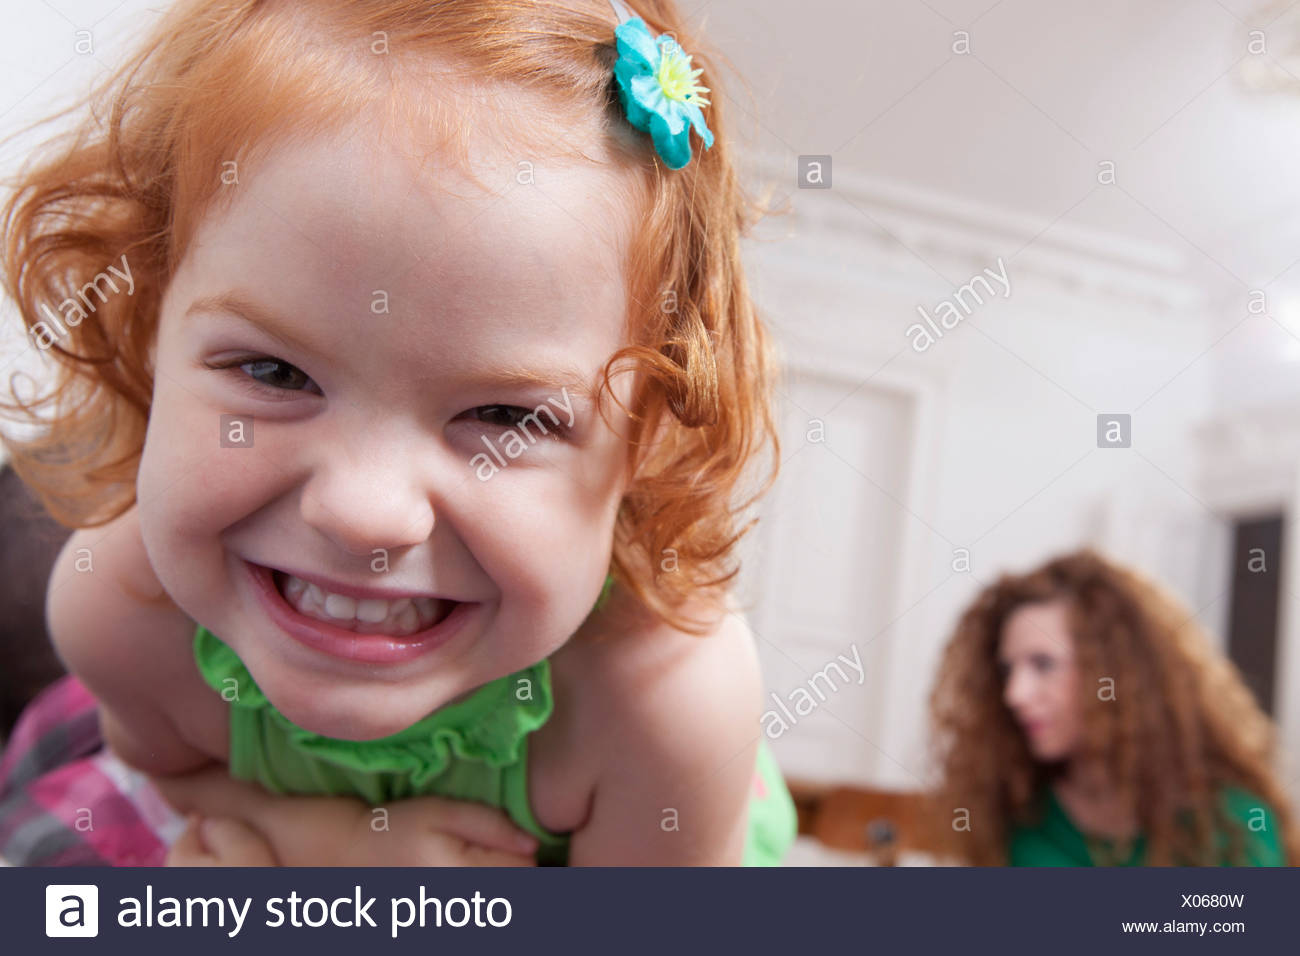 Germany, Berlin, Girl having fun at home, woman in background - Stock Image